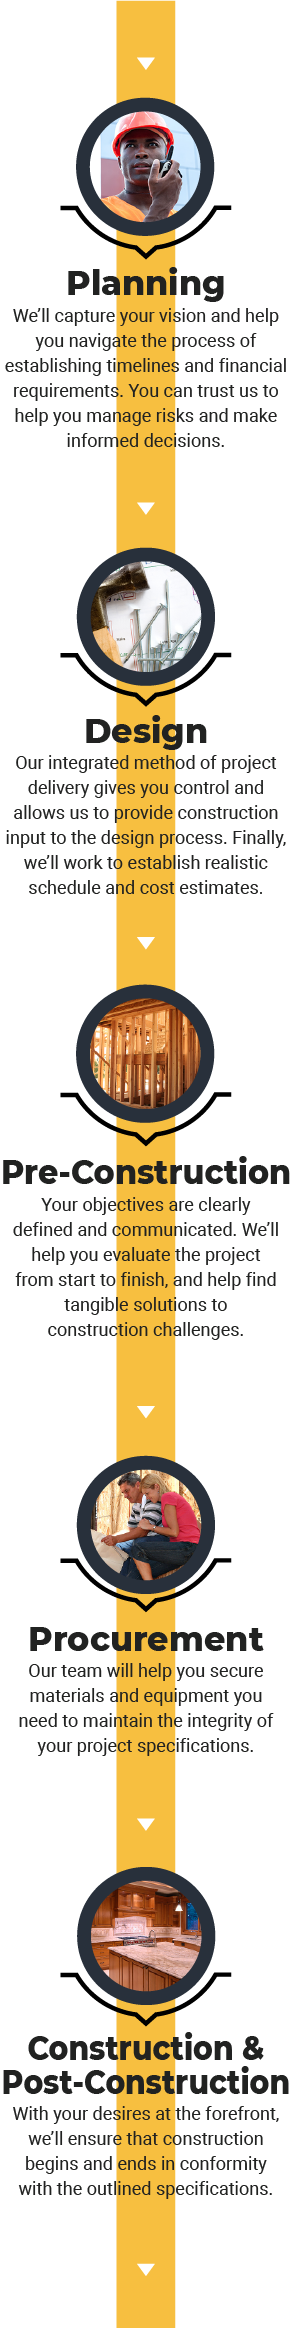 YES Construction - Planning, Design, Pre-Construction, Procurement, Construction & Post-Construction